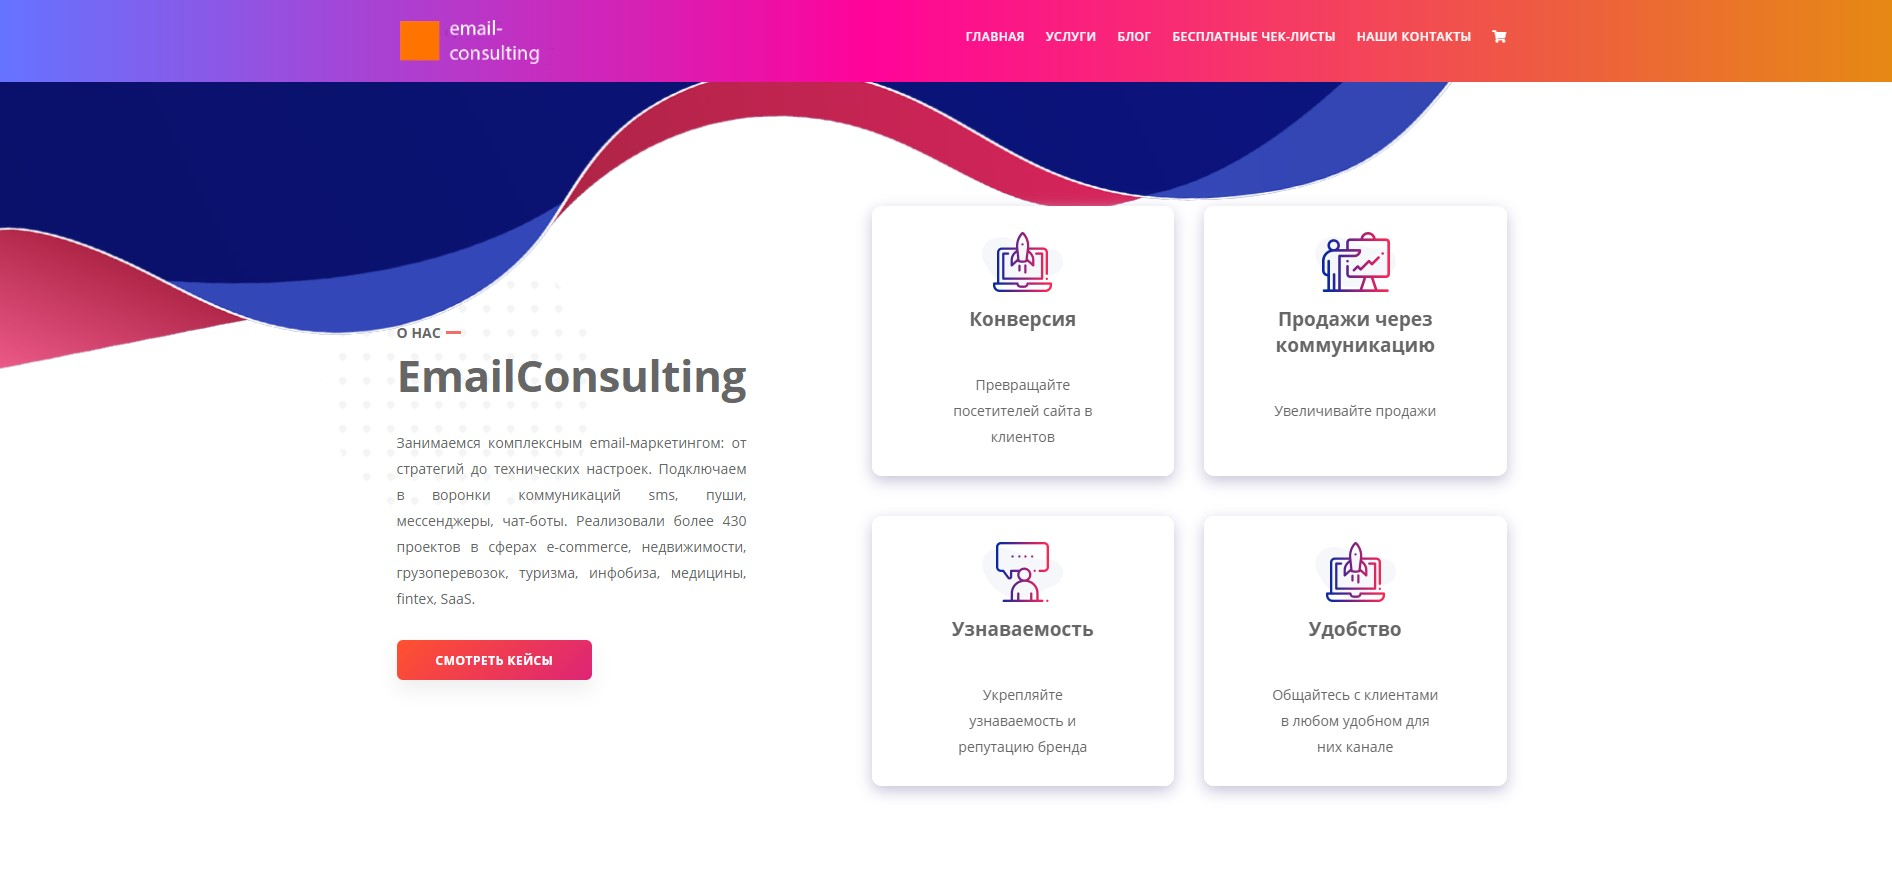 emailconsulting